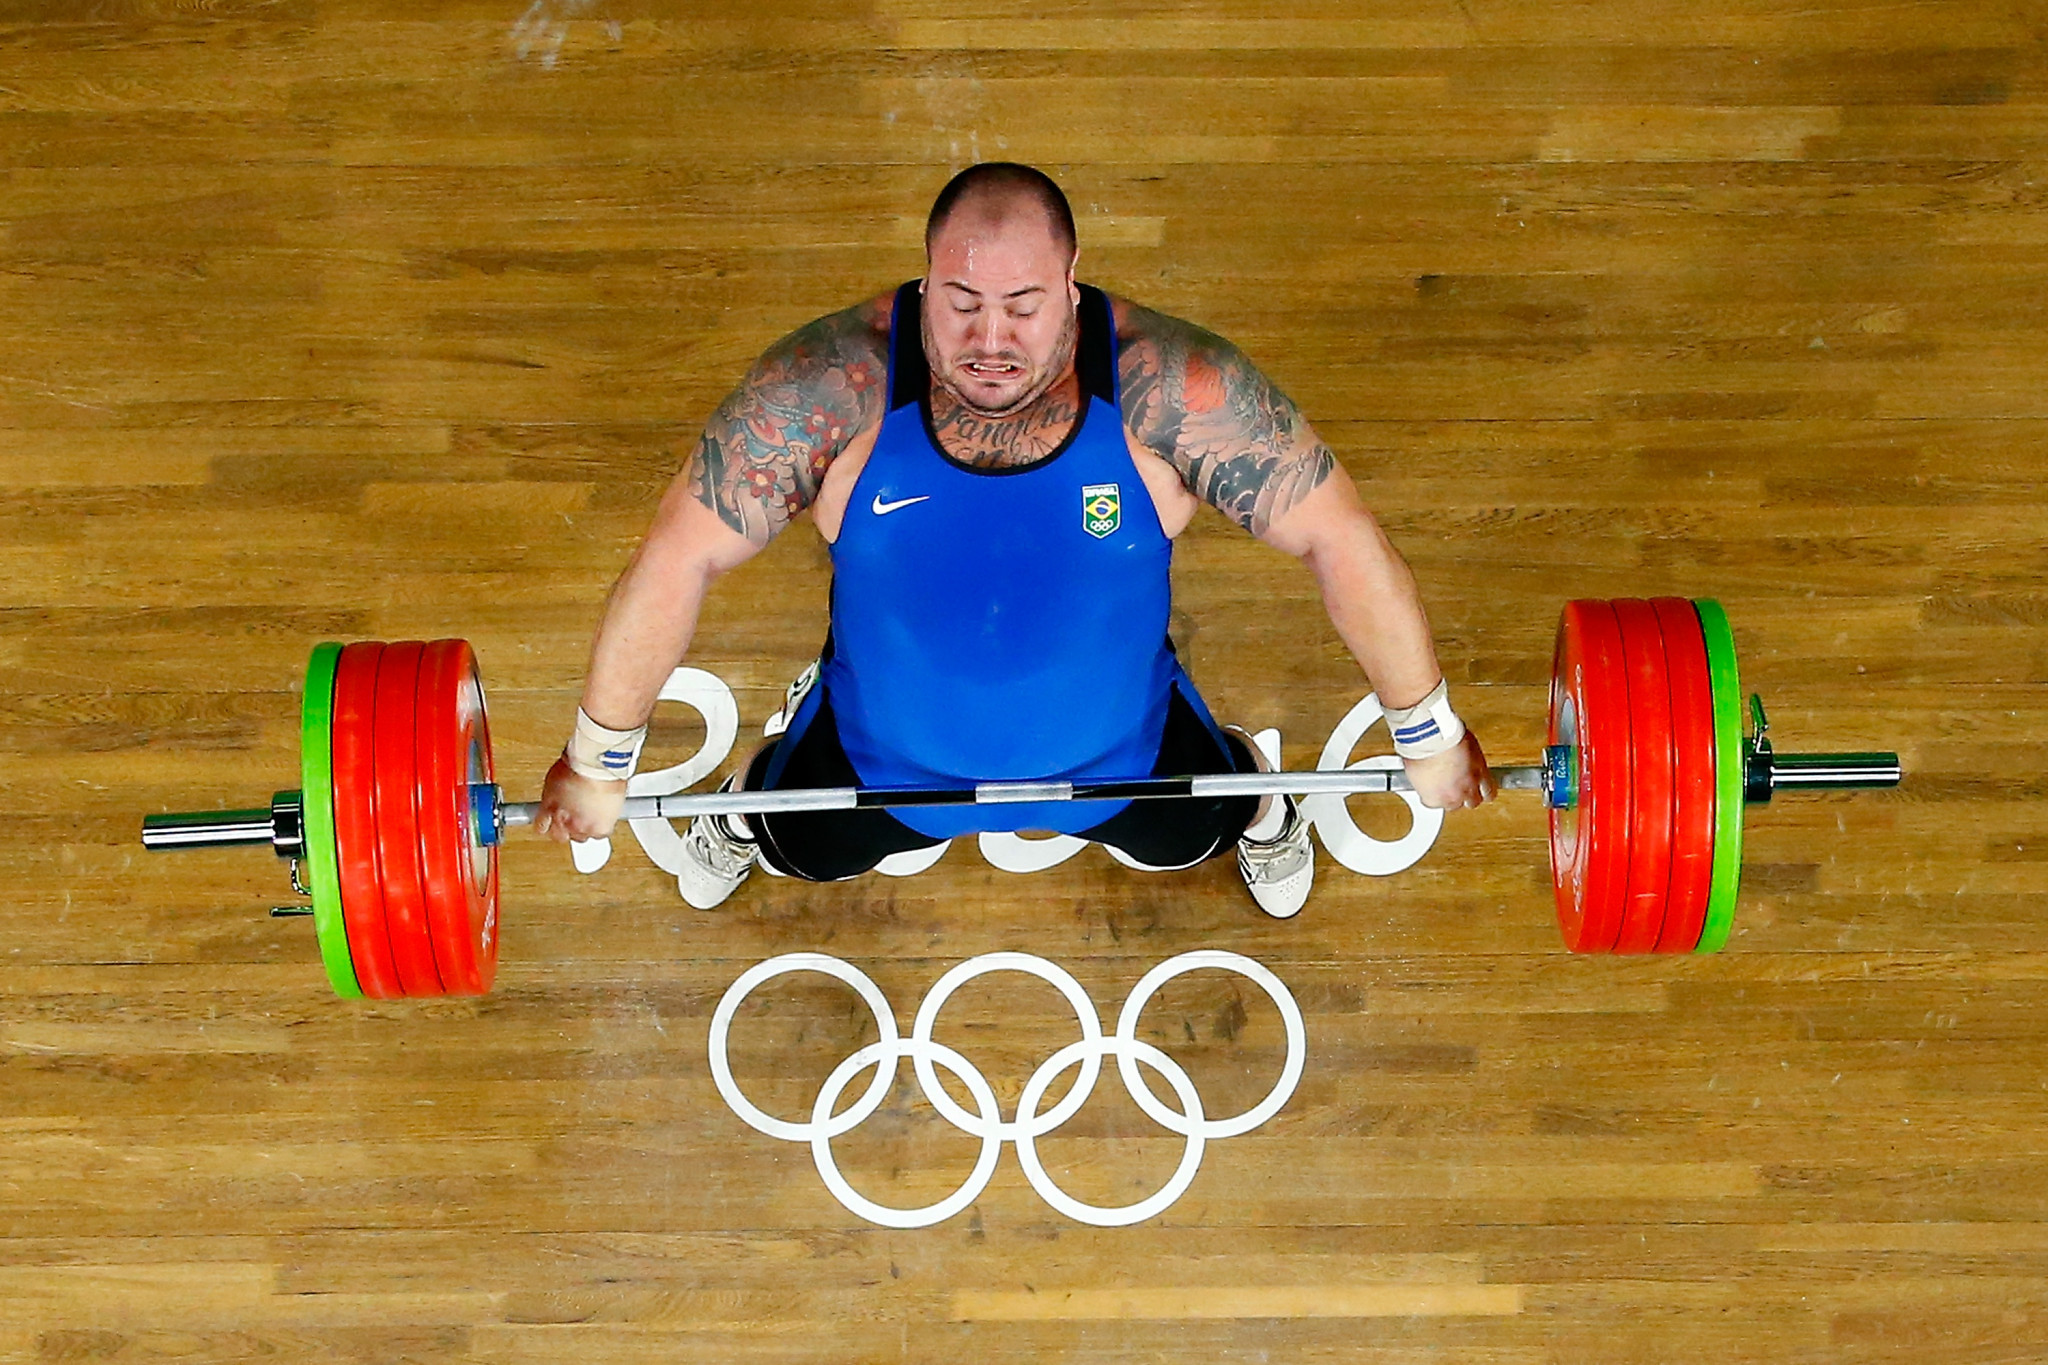 Weightlifting's place at the Olympic Games has been threatened if there are not governance improvements ©Getty Images